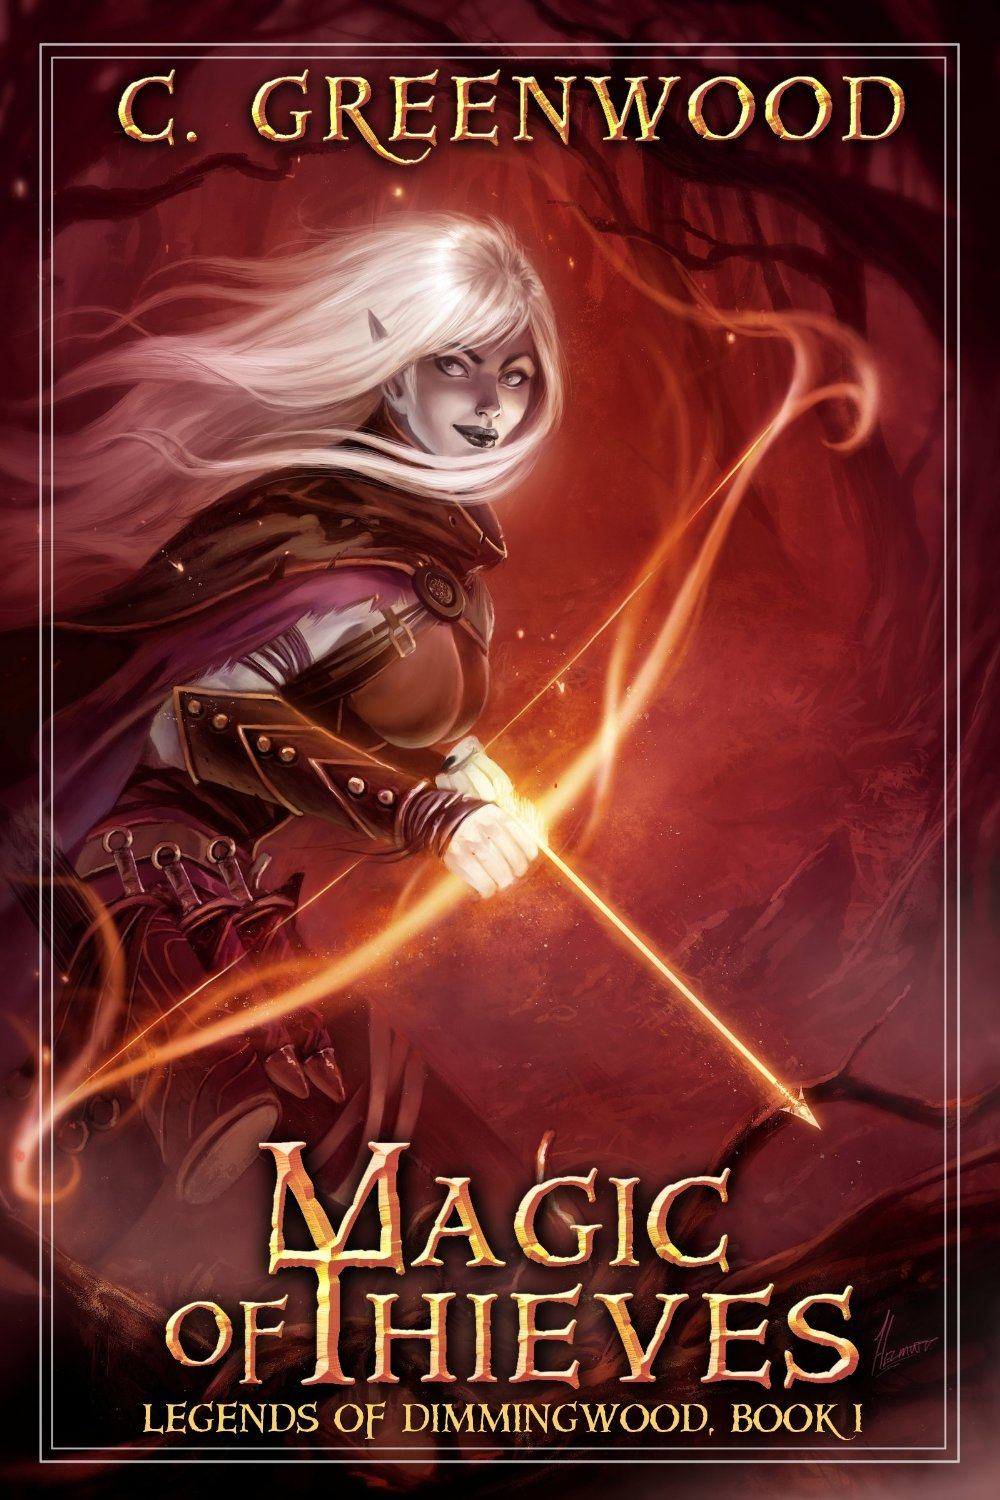 Magic of Thieves: Legends of Dimmingwood, Book 1 by C. Greenwood